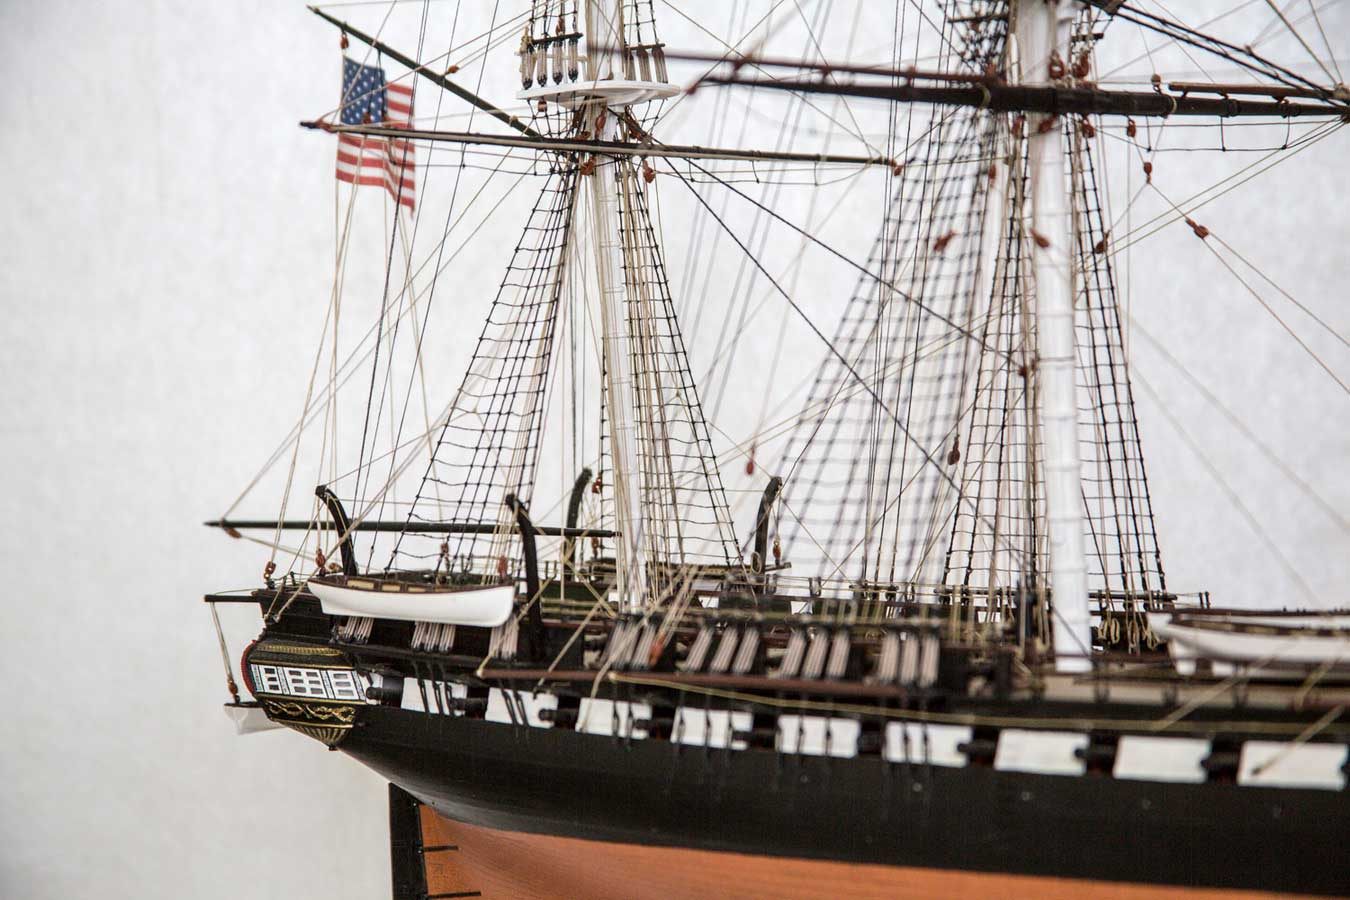 airplane models kits with Uss Constitution Model From Revell 30 Foto on Northrop F 5 Tiger Latest Hobbymaster And Oxford Diecast Model Photos besides Watch in addition Bourrasque French Tank additionally Airfix dioramas likewise Uss Constitution Model From Revell 30 Foto.